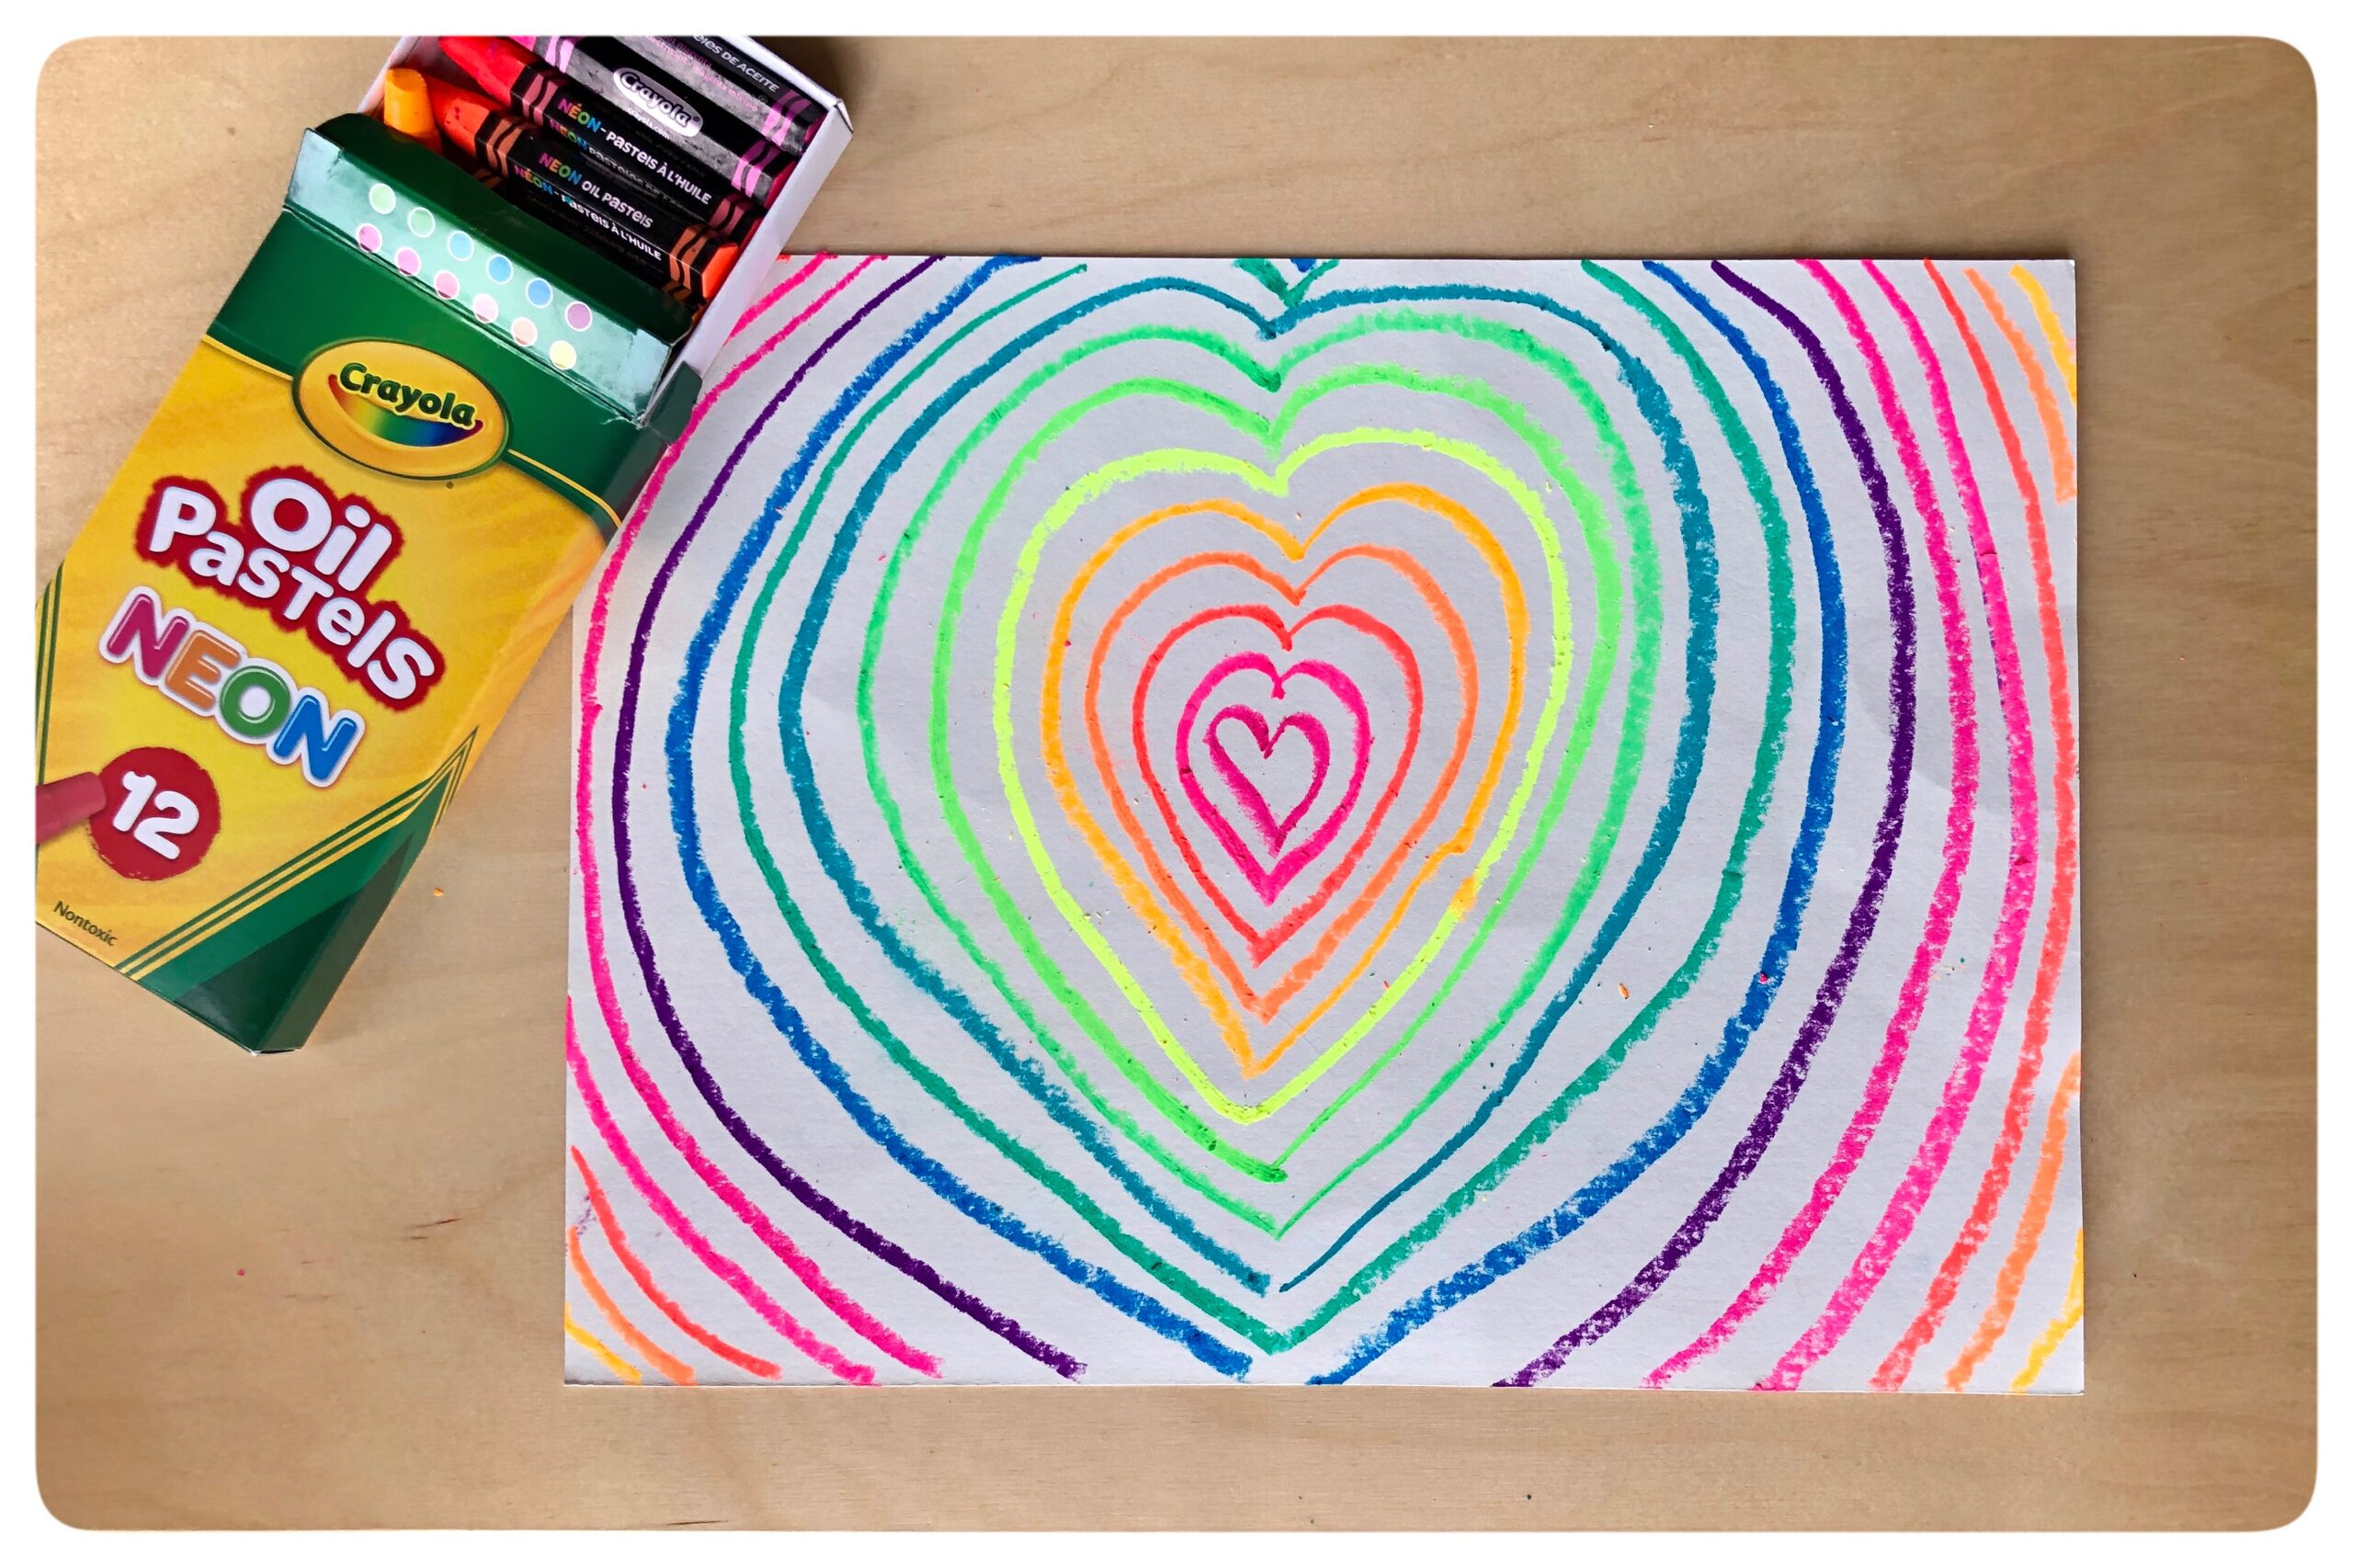 Keith Haring, a famous artist, is primarily known for solid, bold lines with vibrant colors.  His vibrant artwork tells of friendship, fun, and acceptance. Today we're creating interactive ways to think about Pop Art while learning about Keith Haring.  Come create these concentric hearts with a special surprise at the end to add a little POP to your creation. 💗